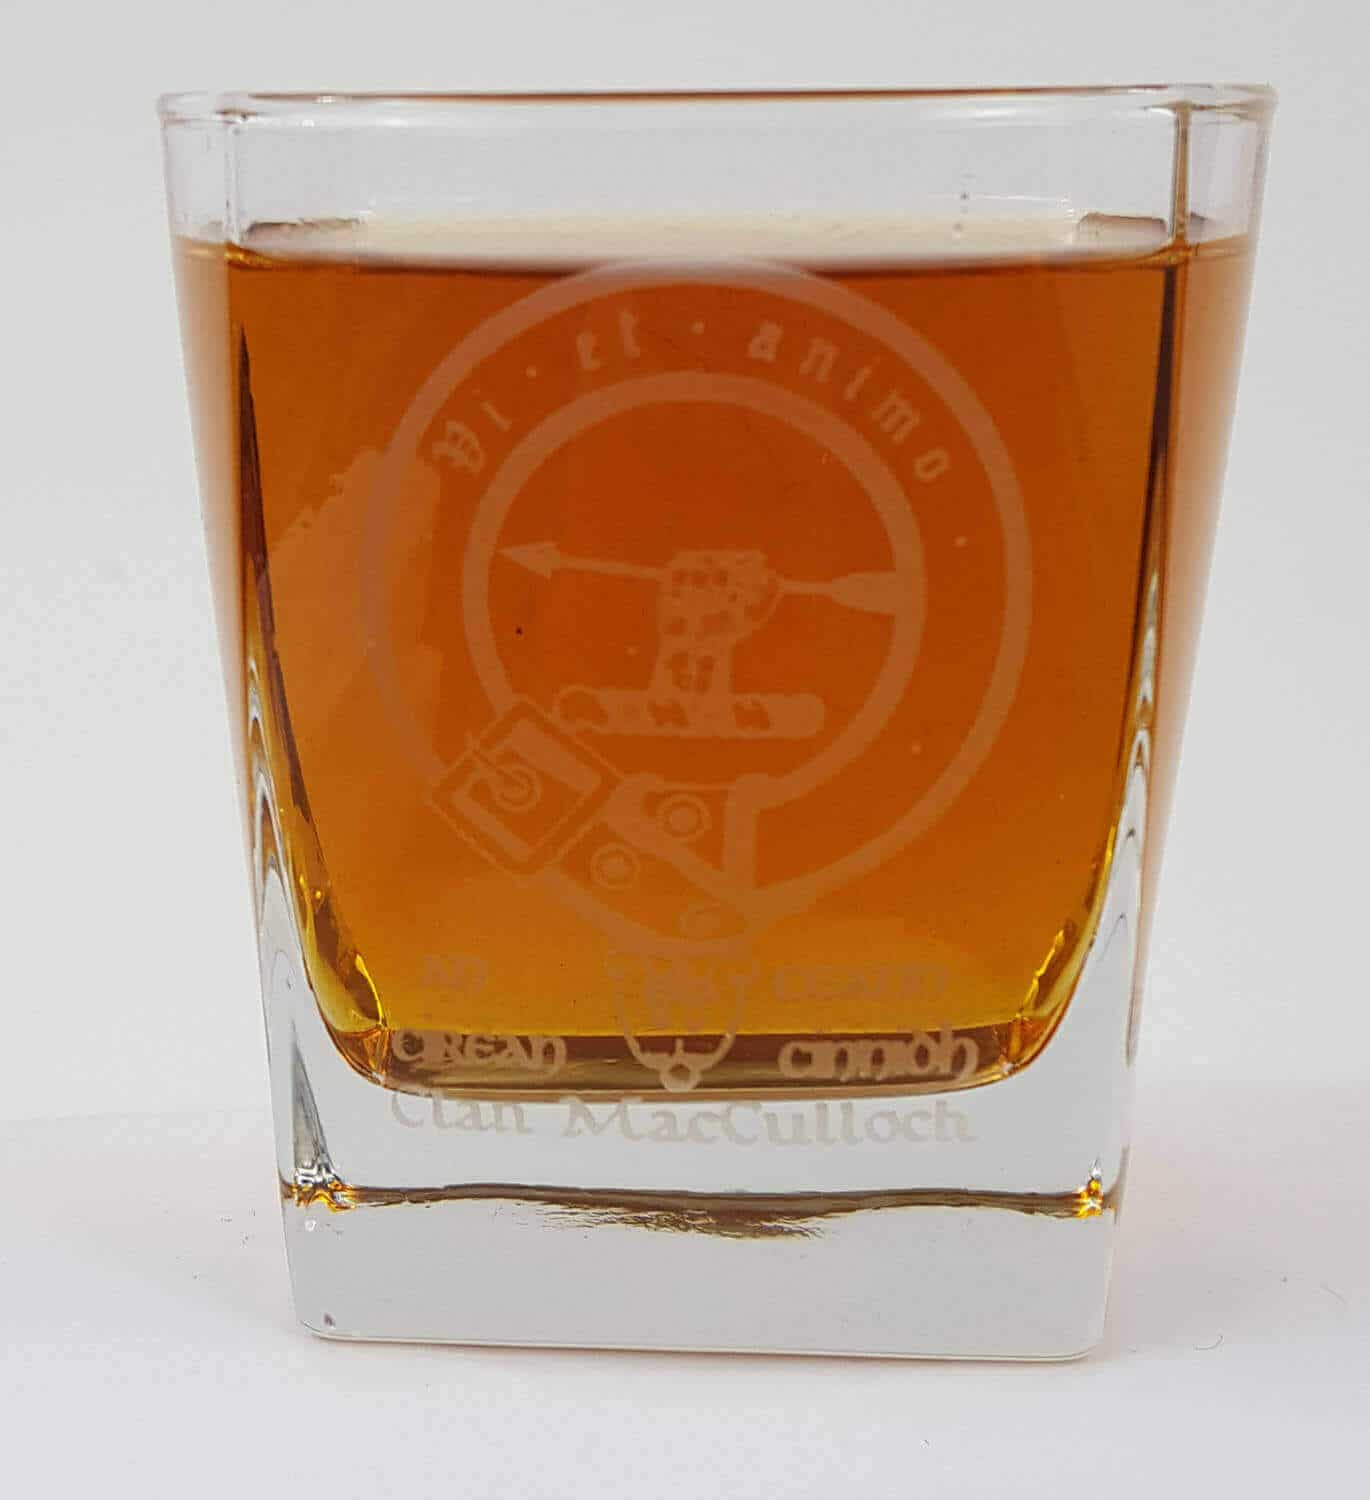 MacCulloch Clan Crest Whisky Glass